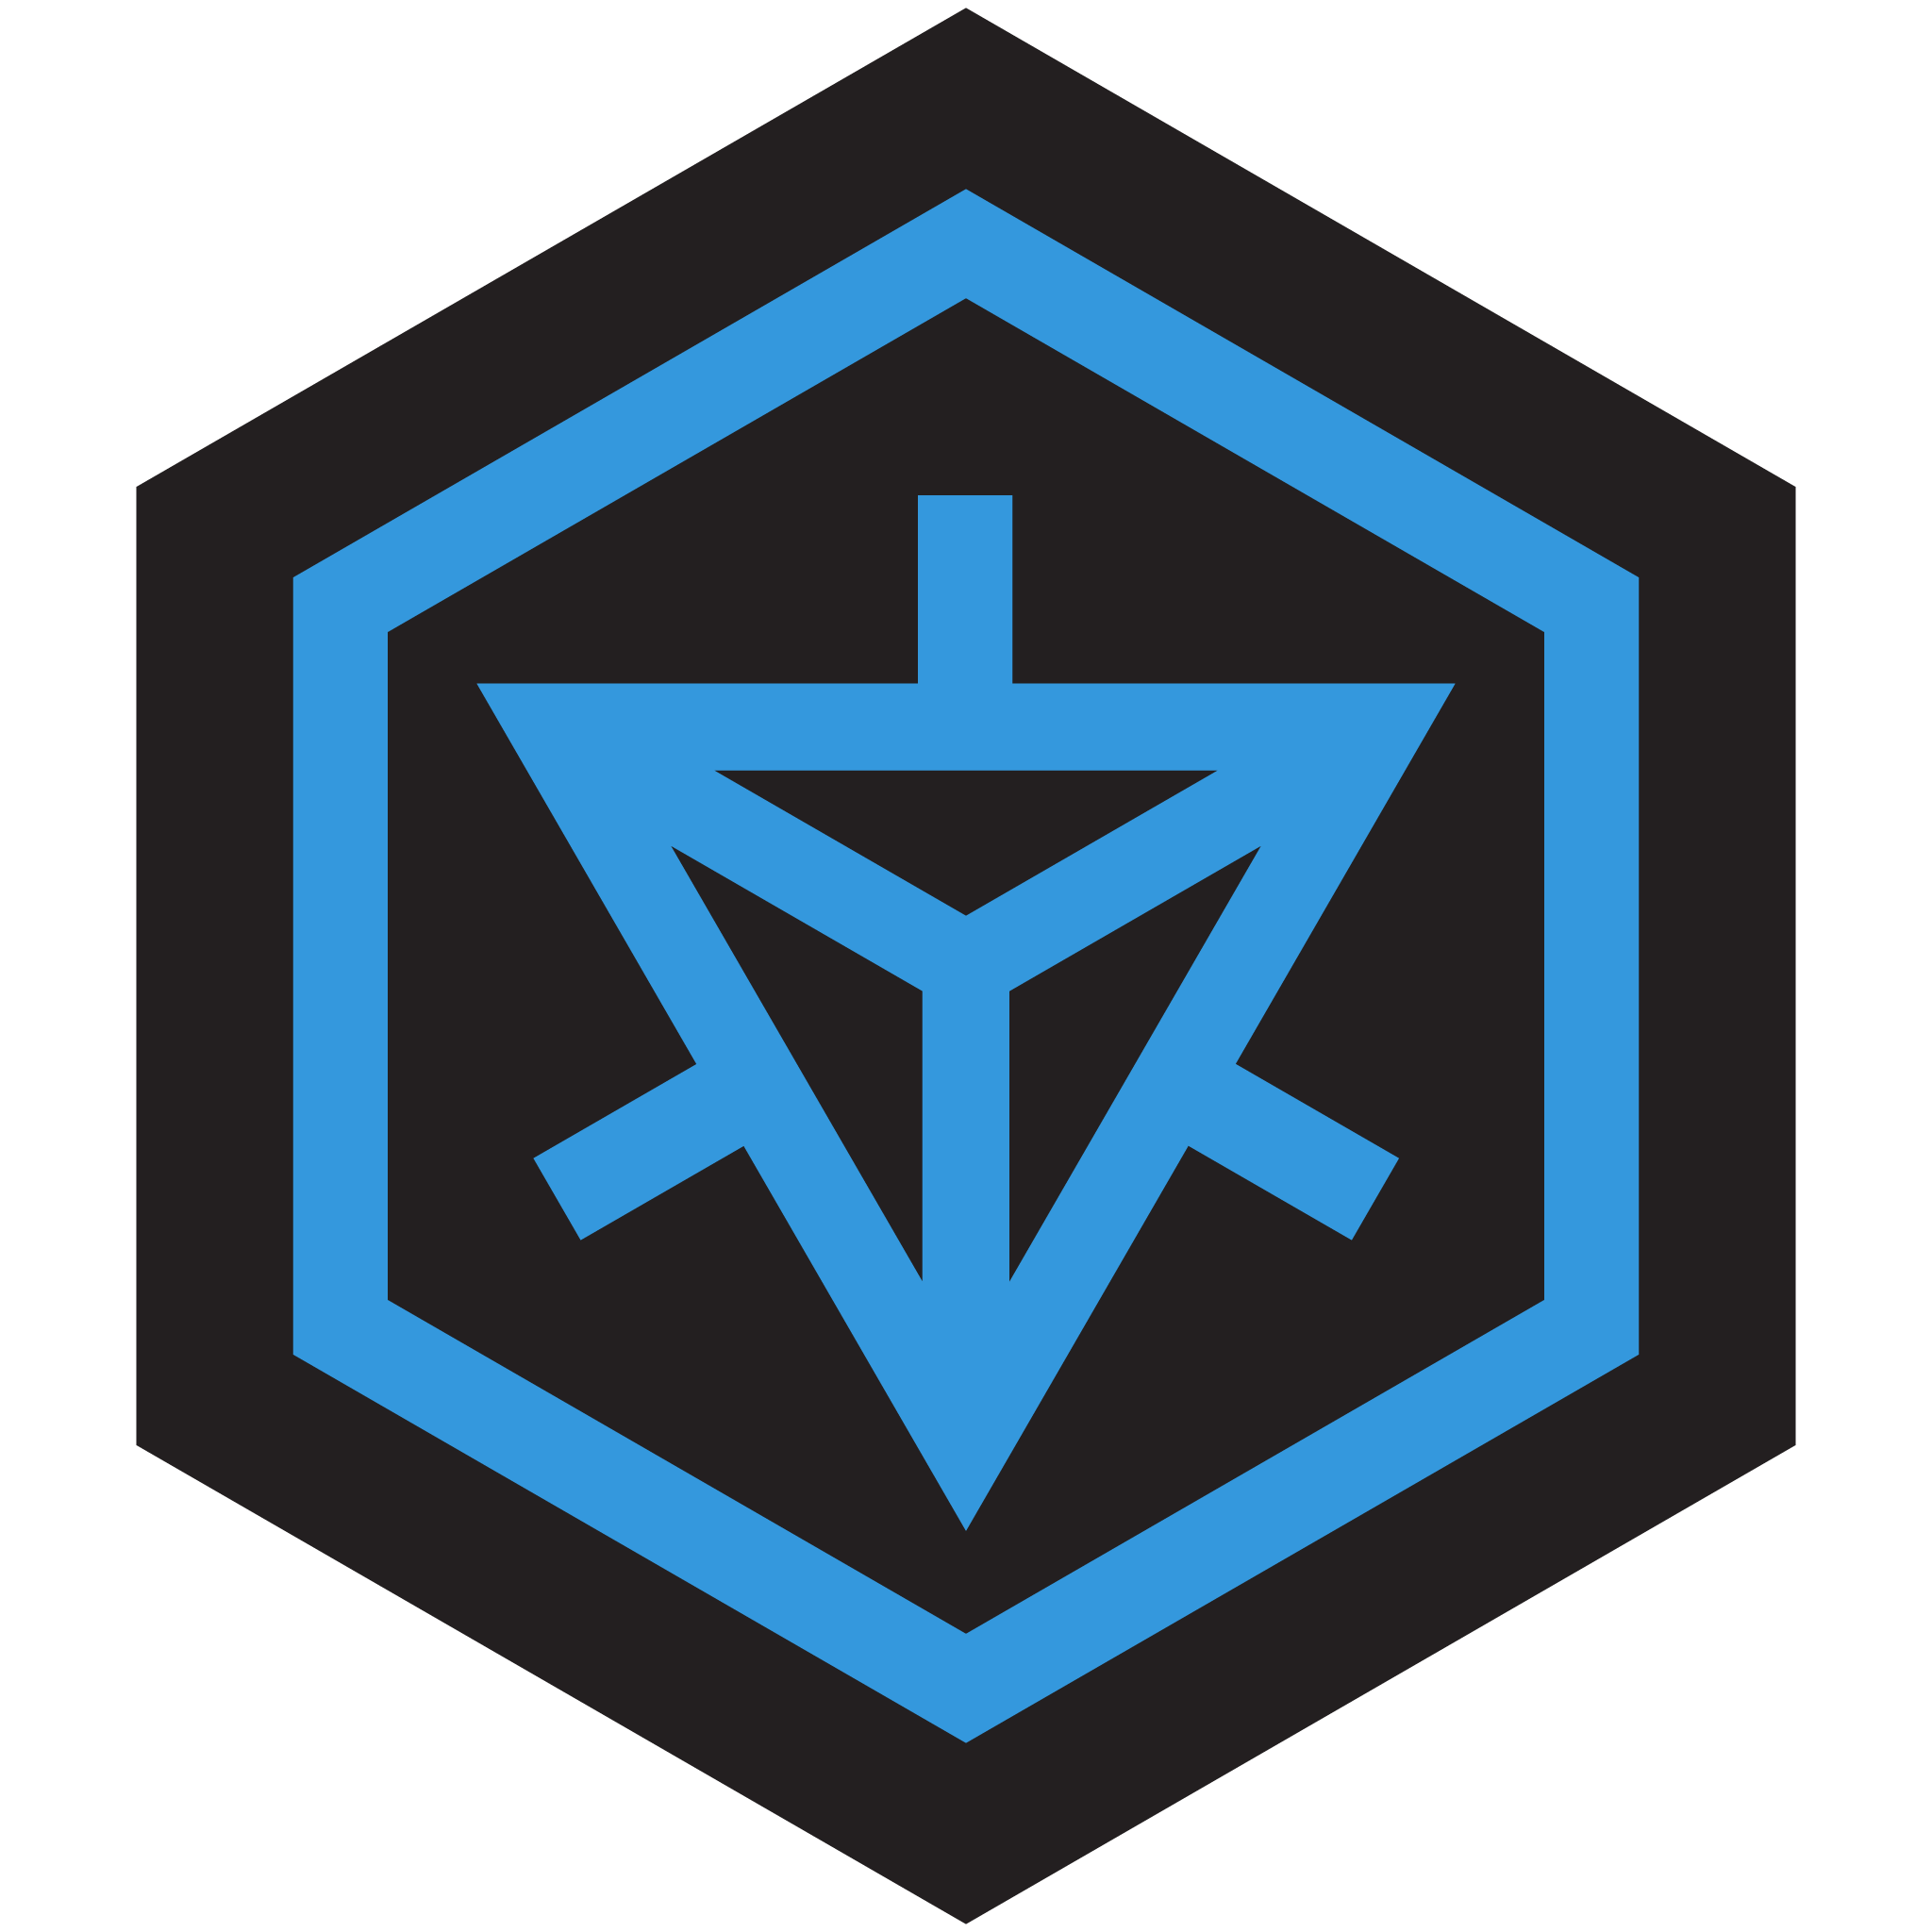 ingress logos by cr0ybot